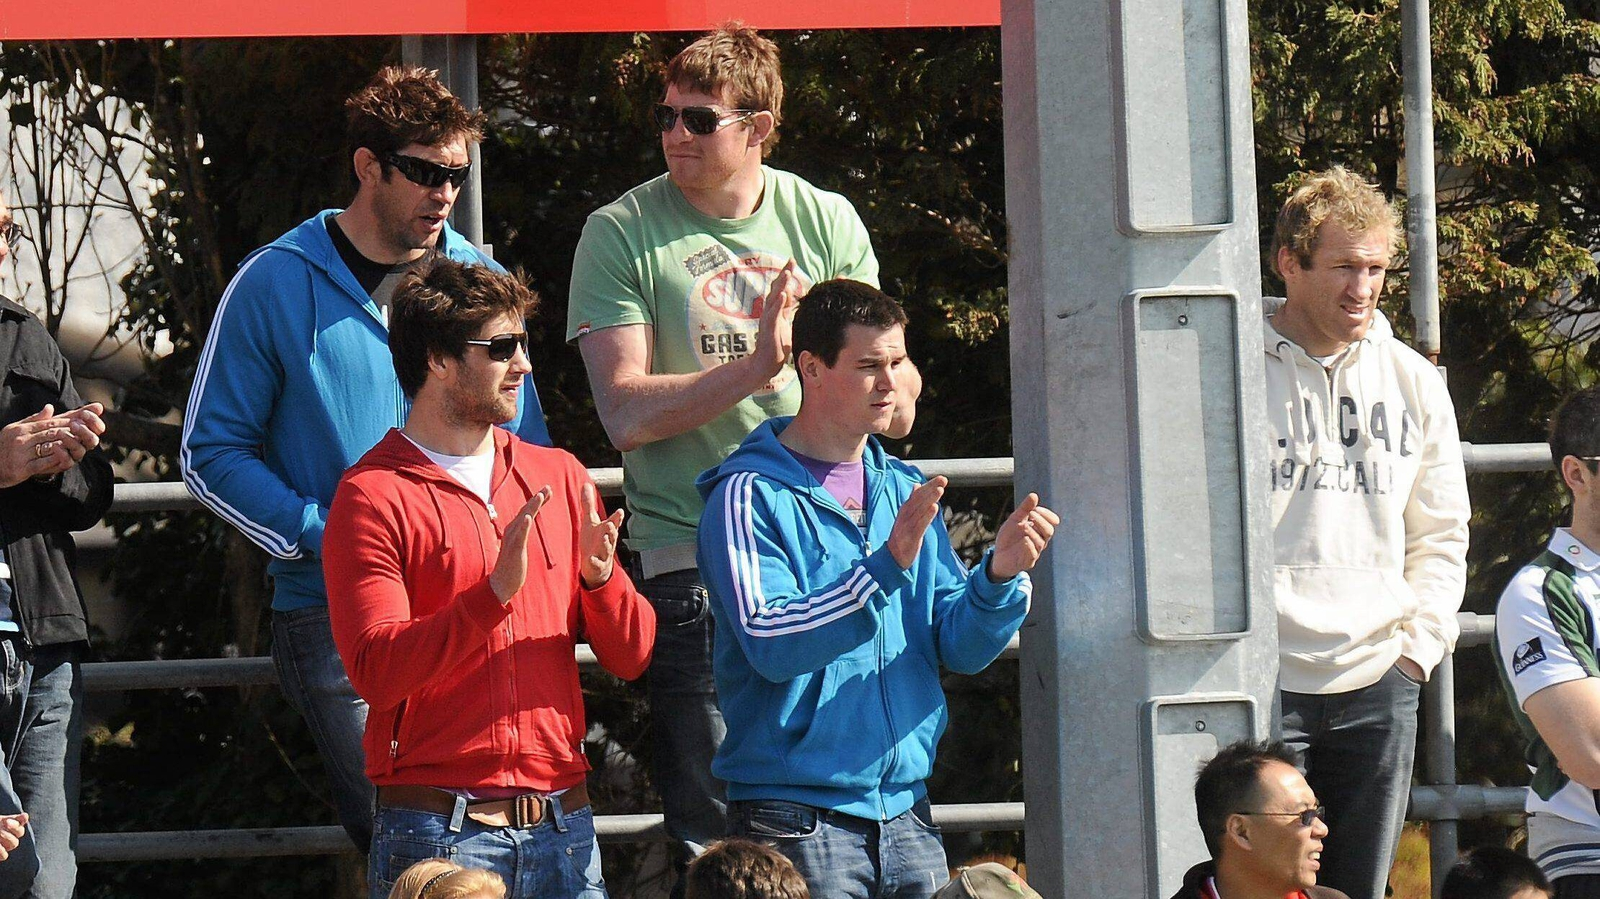 Image - Nathan Hines, Malcolm O'Kelly, Berne, Sexton and Kevin McLaughlin at an AIL league match